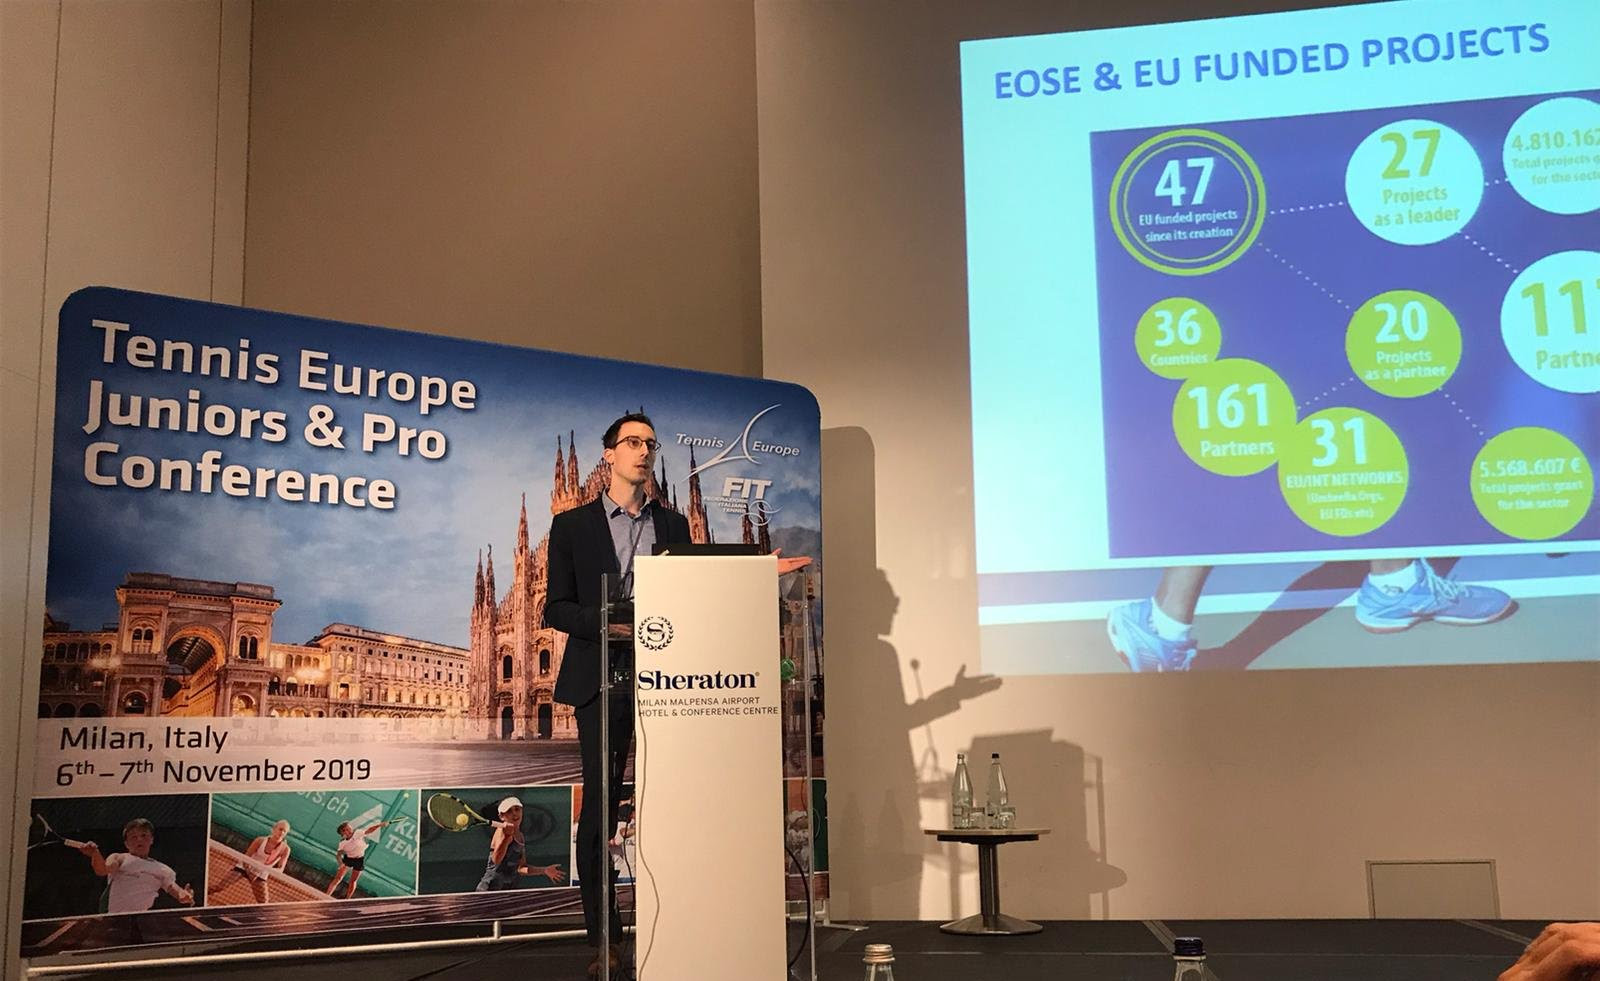 EOSE contributed to the Tennis Europe Juniors and Pro Conference